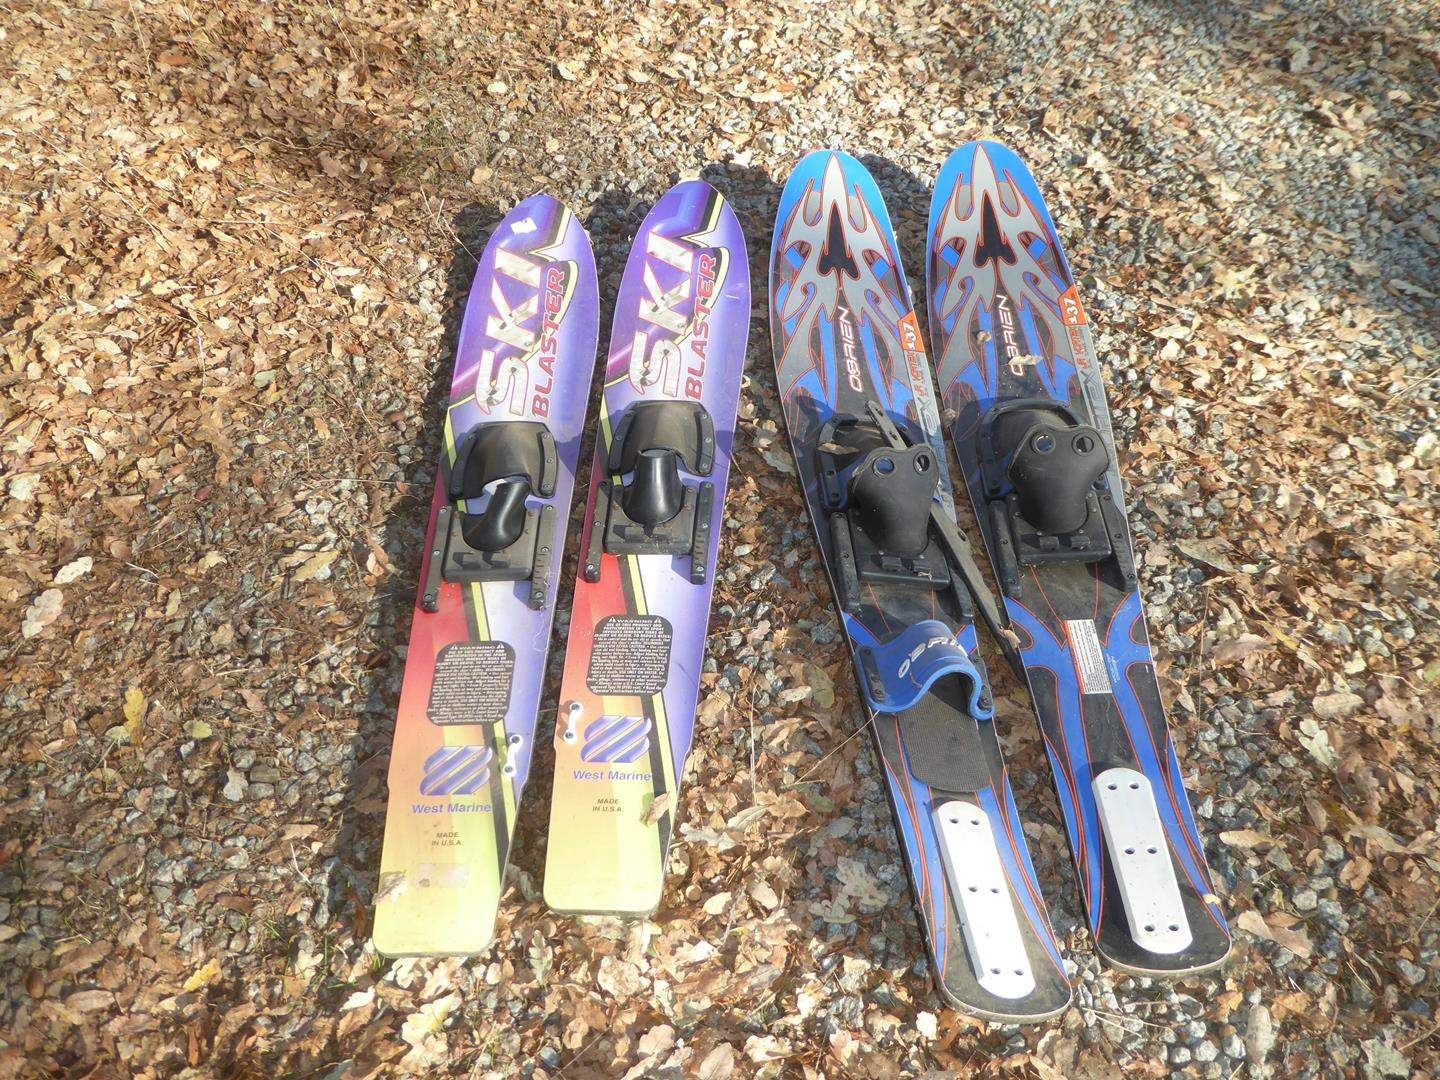 Lot # 77 - West Marine Ski Blaster & Obrien Jr. Vortex Water Skis (main image)